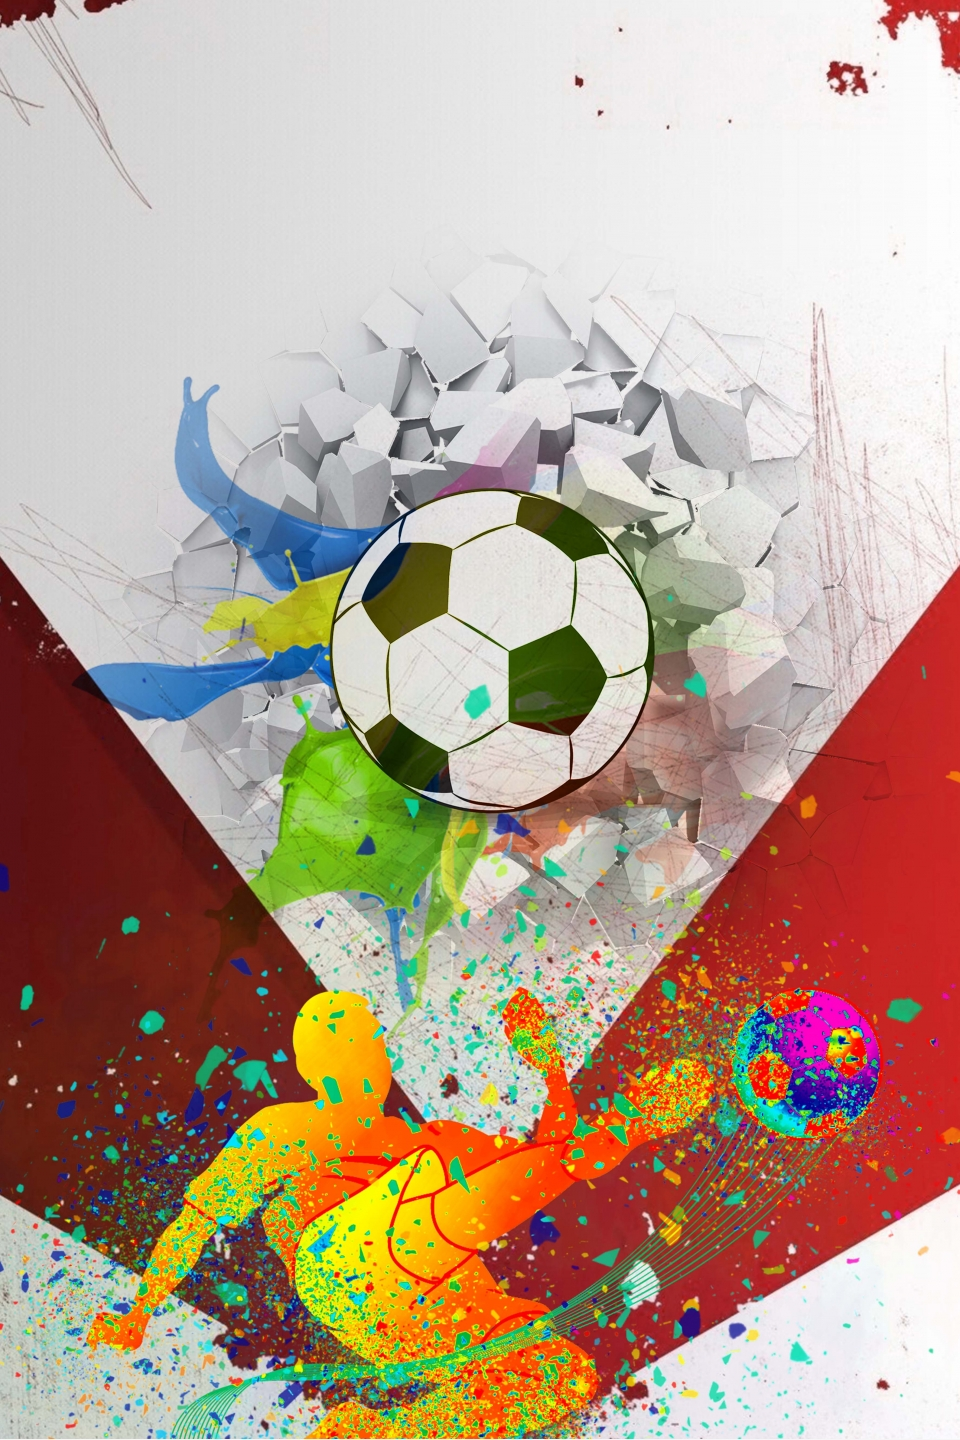 Poster Design For The 2018 World Cup Football Match, World